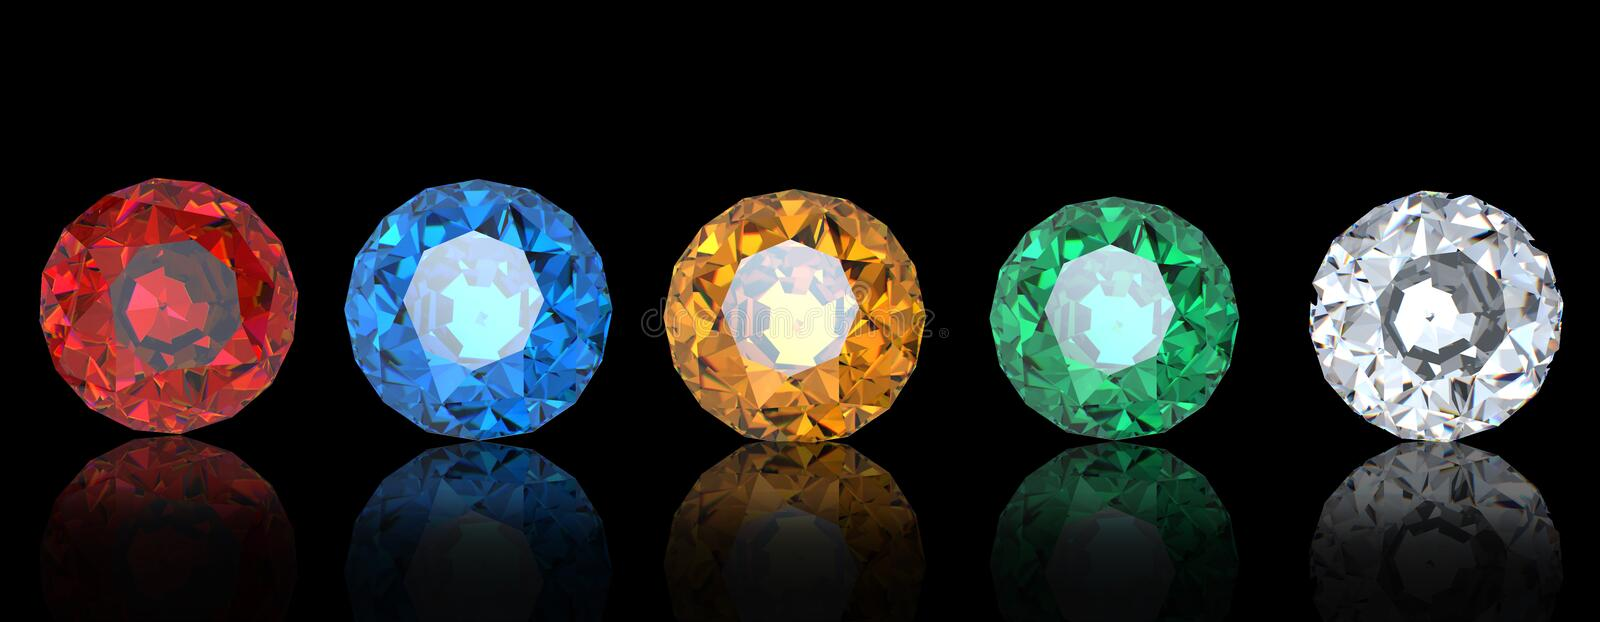 Collections of gems stock illustration